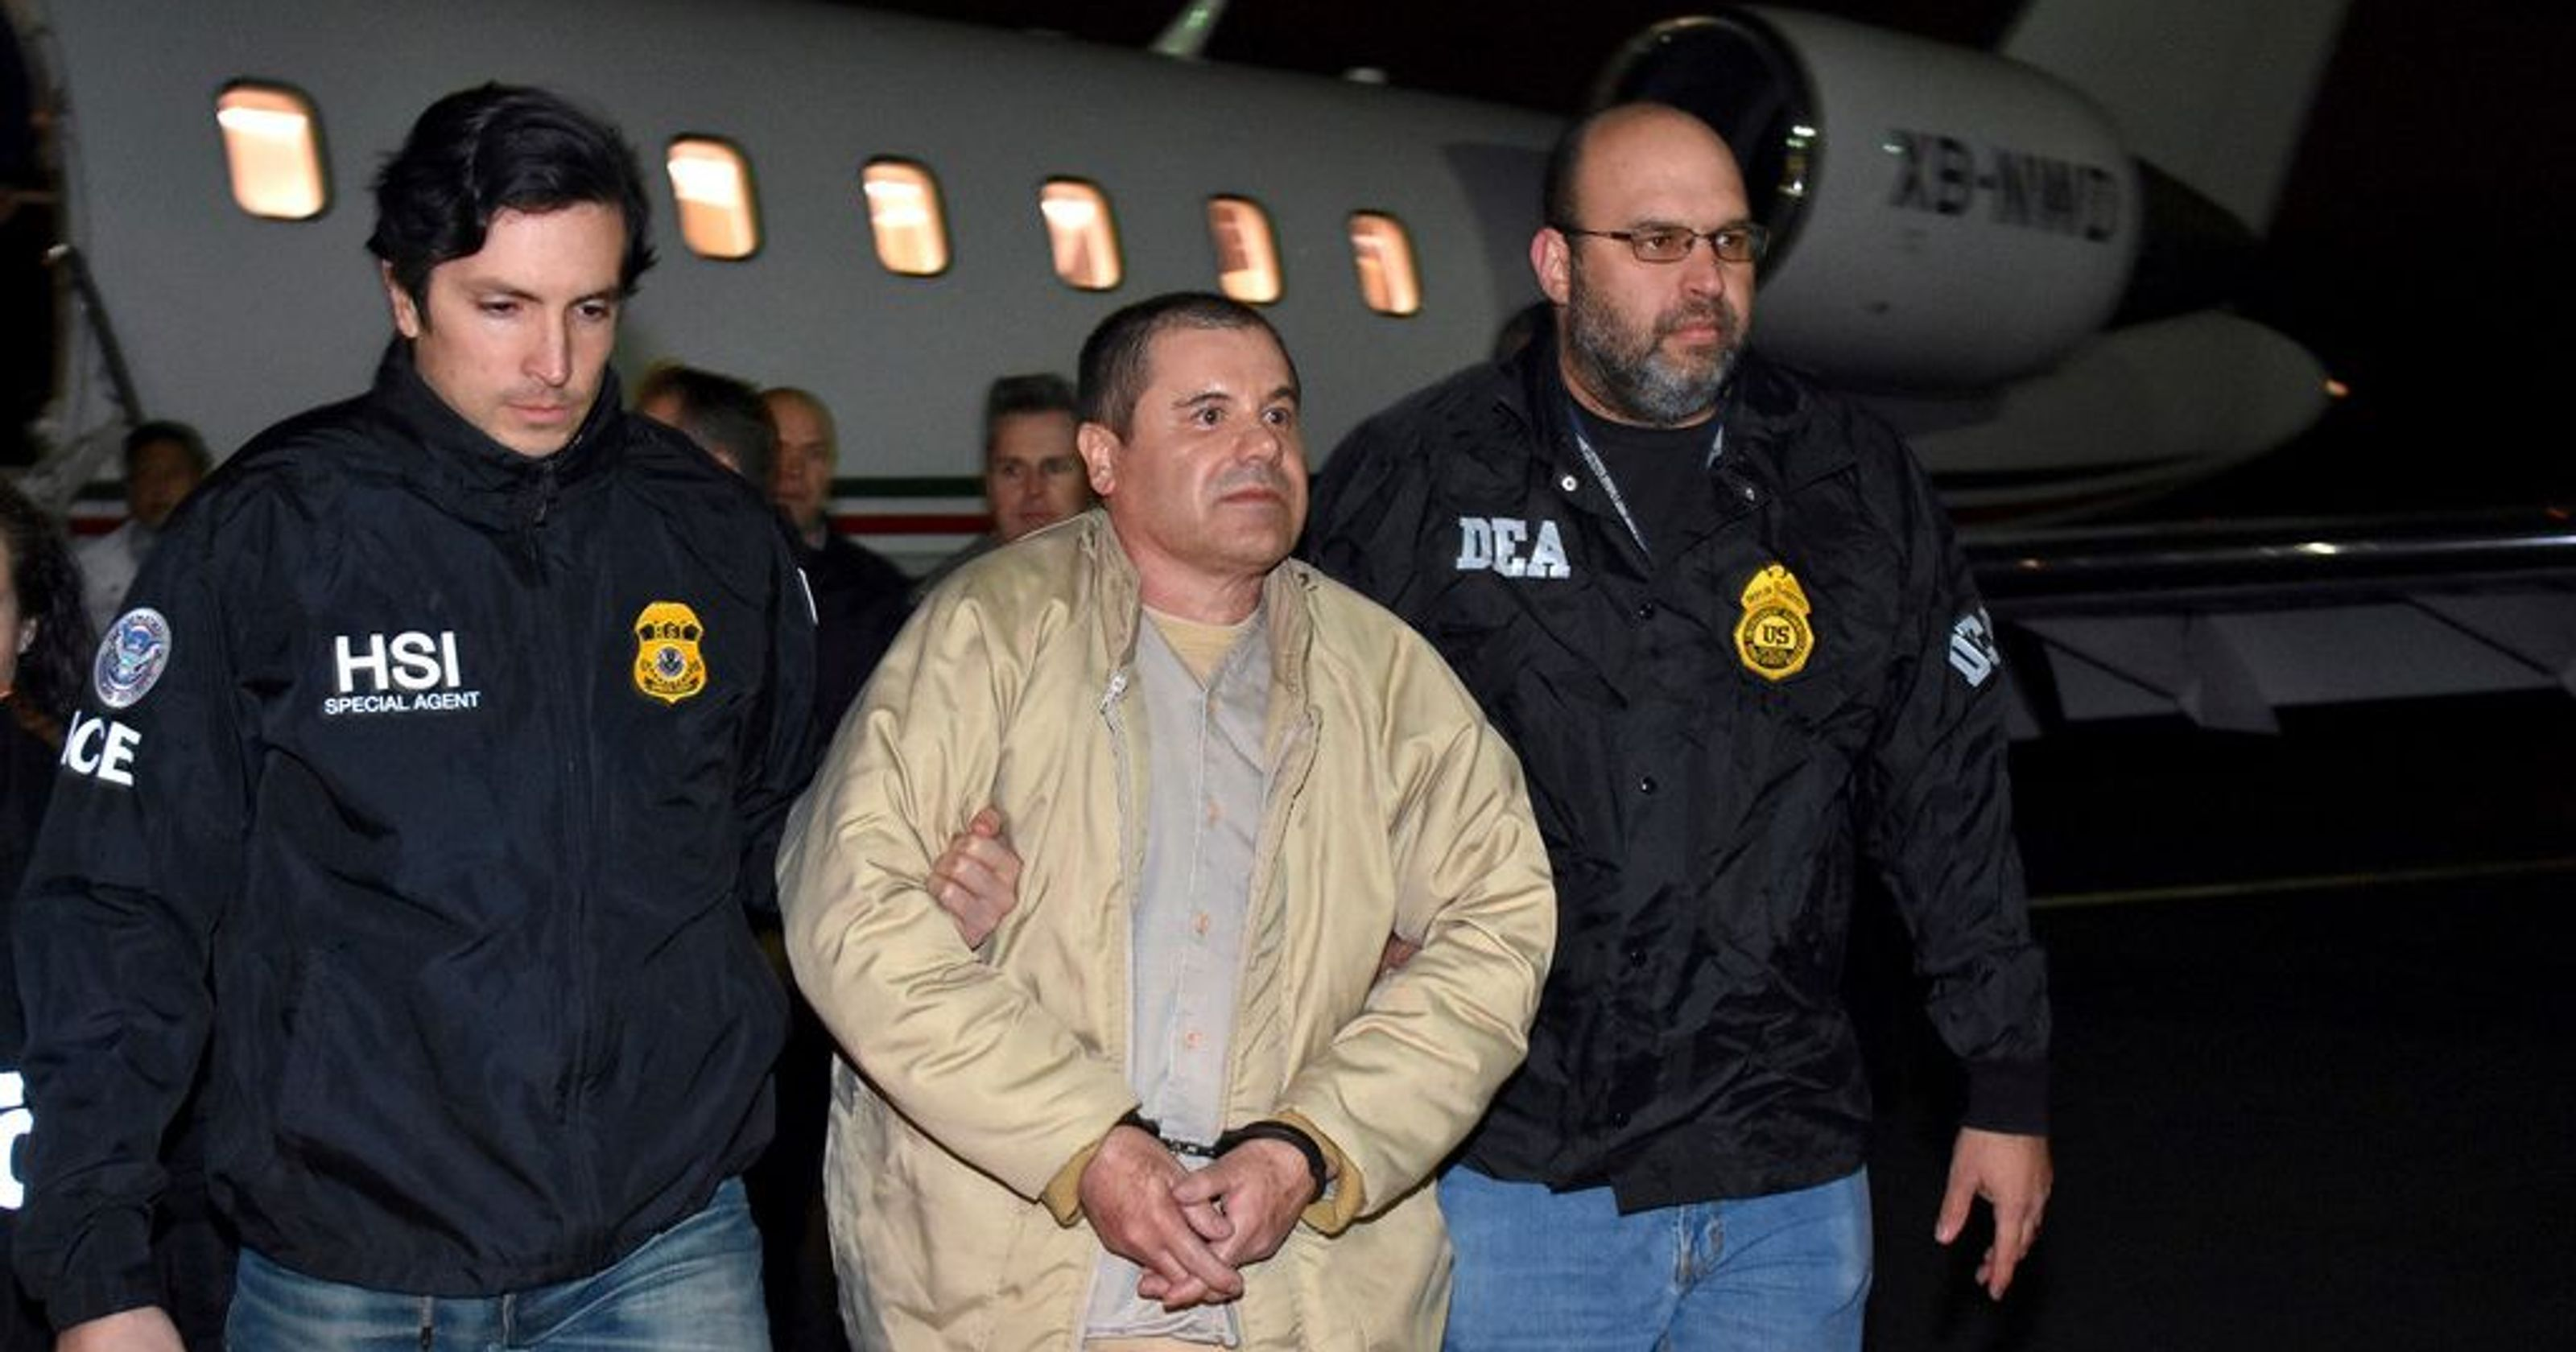 Trial underway in NYC for accused Mexican drug lord